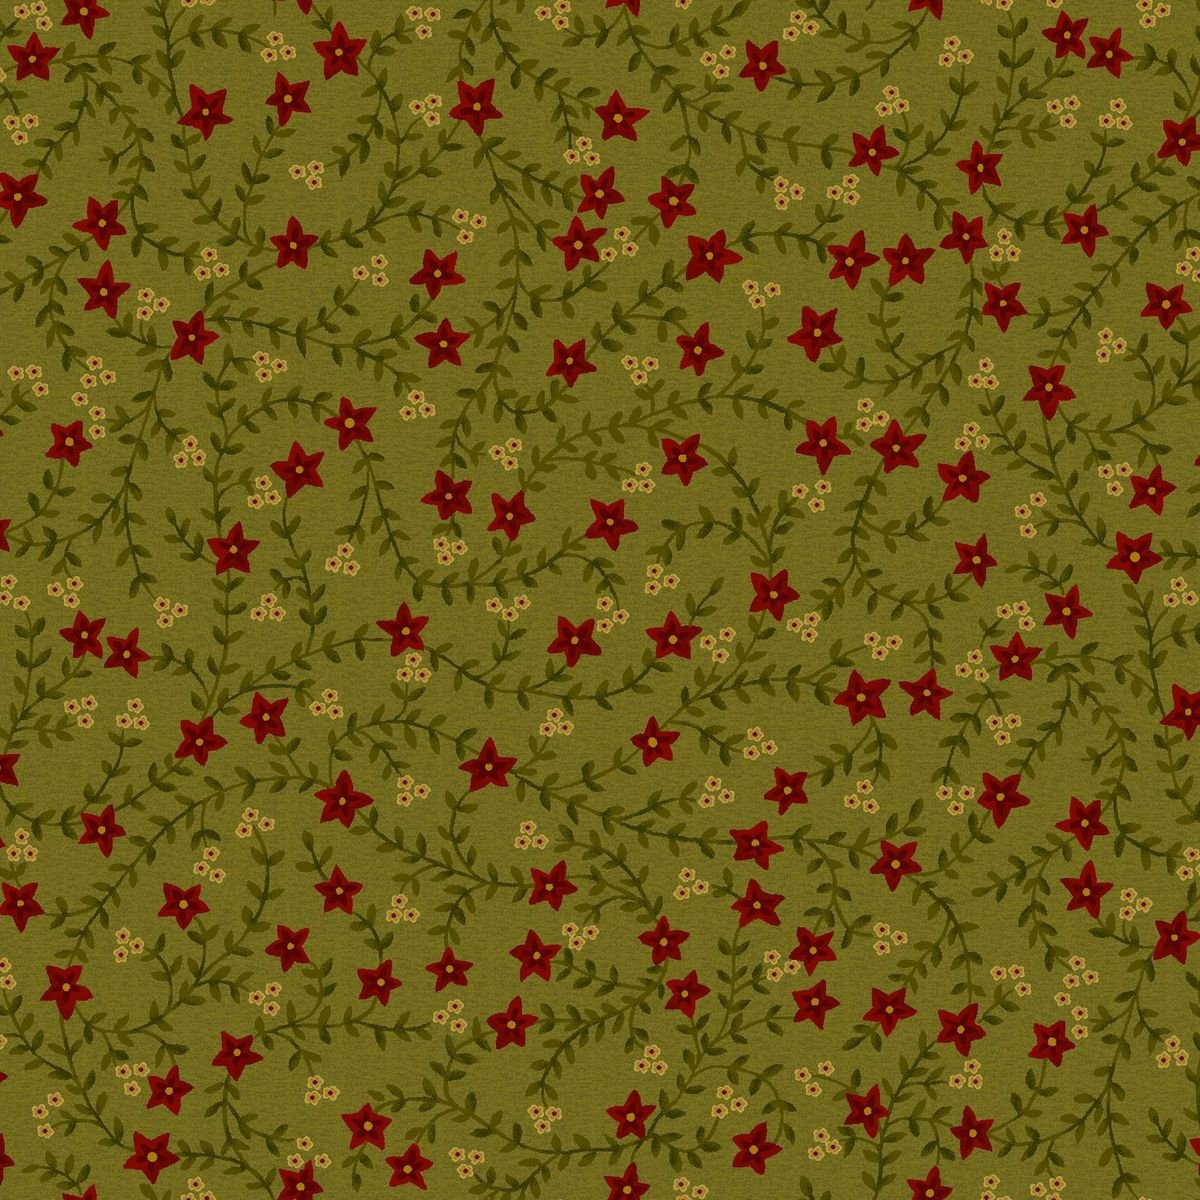 HG-Farmhouse Christmas 9670-66 Green - Vines and Red Flowers